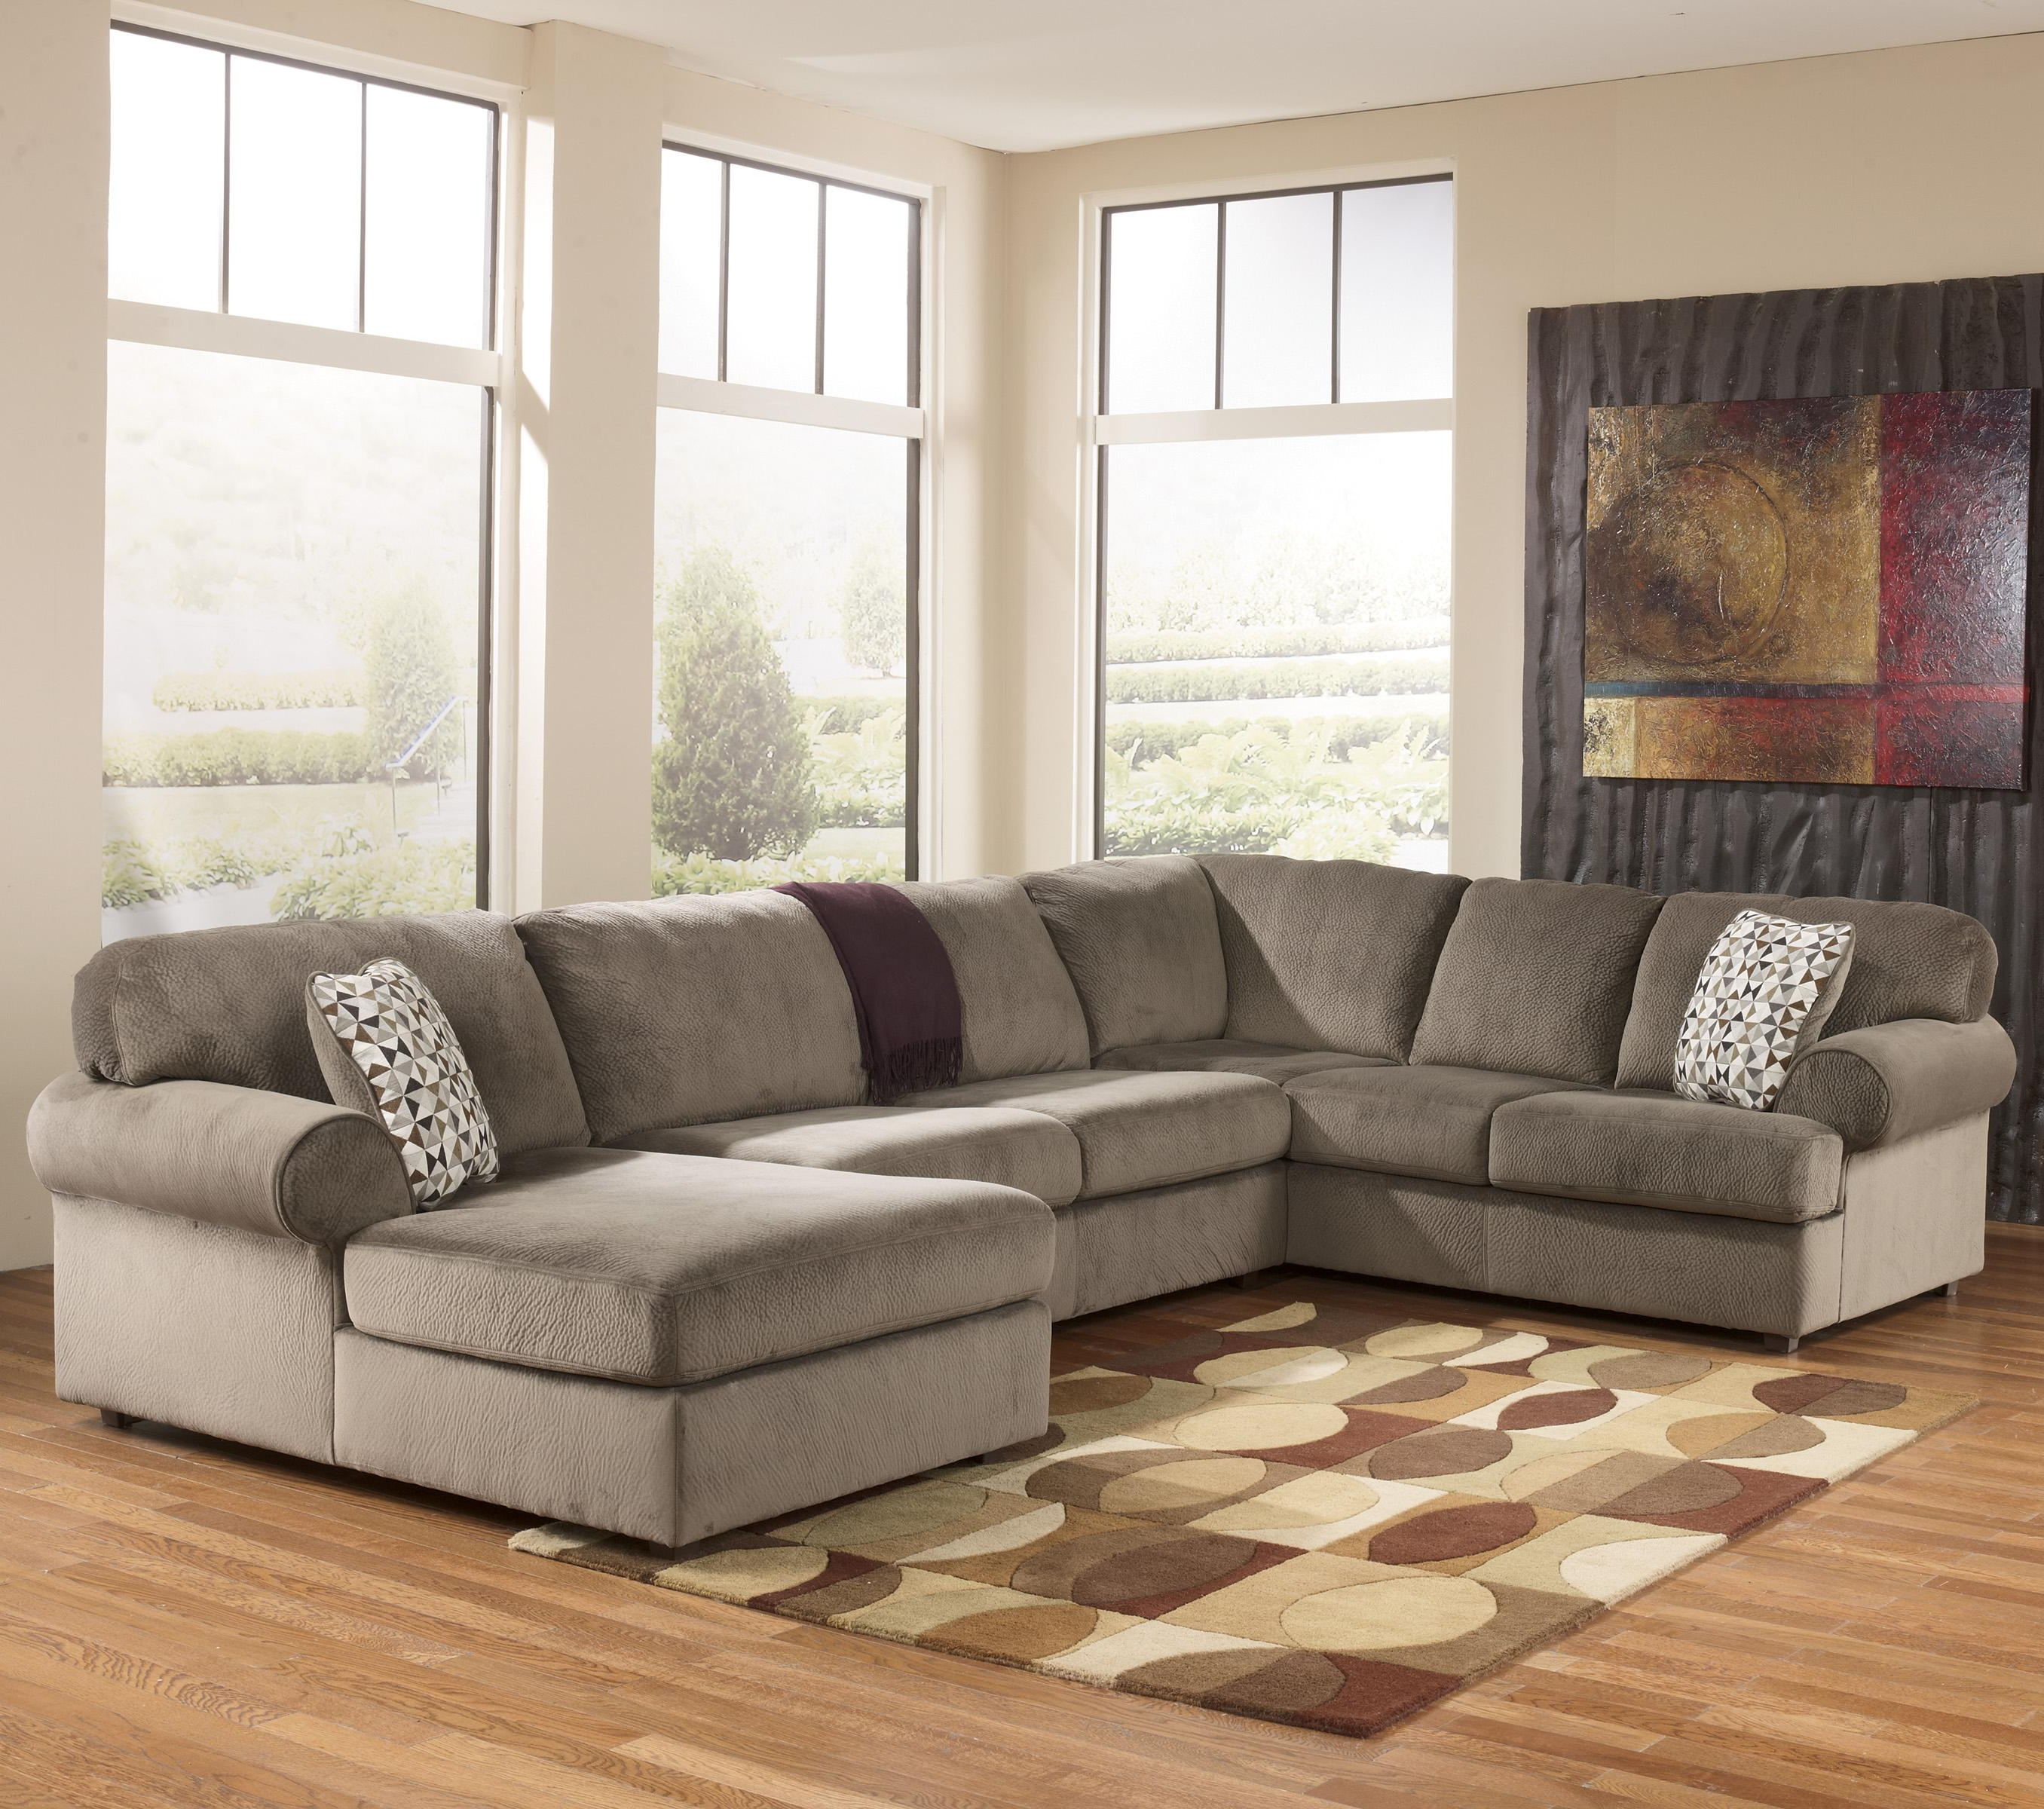 Lucy Grey 2 Piece Sectionals With Laf Chaise Throughout Best And Newest Laf Chaise Sectional Sofa (View 14 of 20)